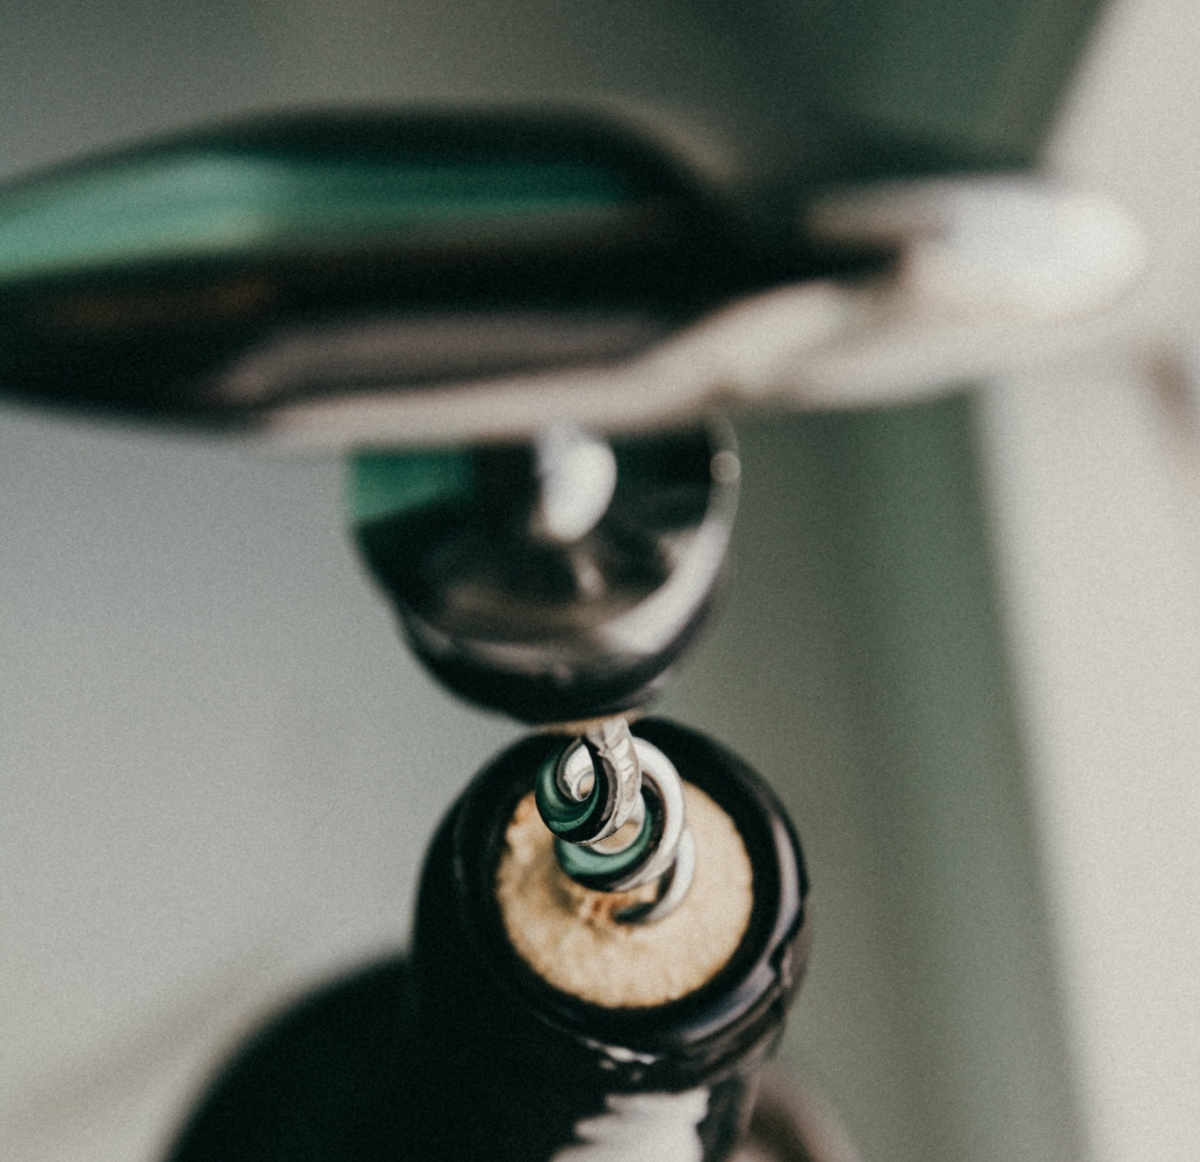 Opening A Bottle Of Wine With A Corkscrew